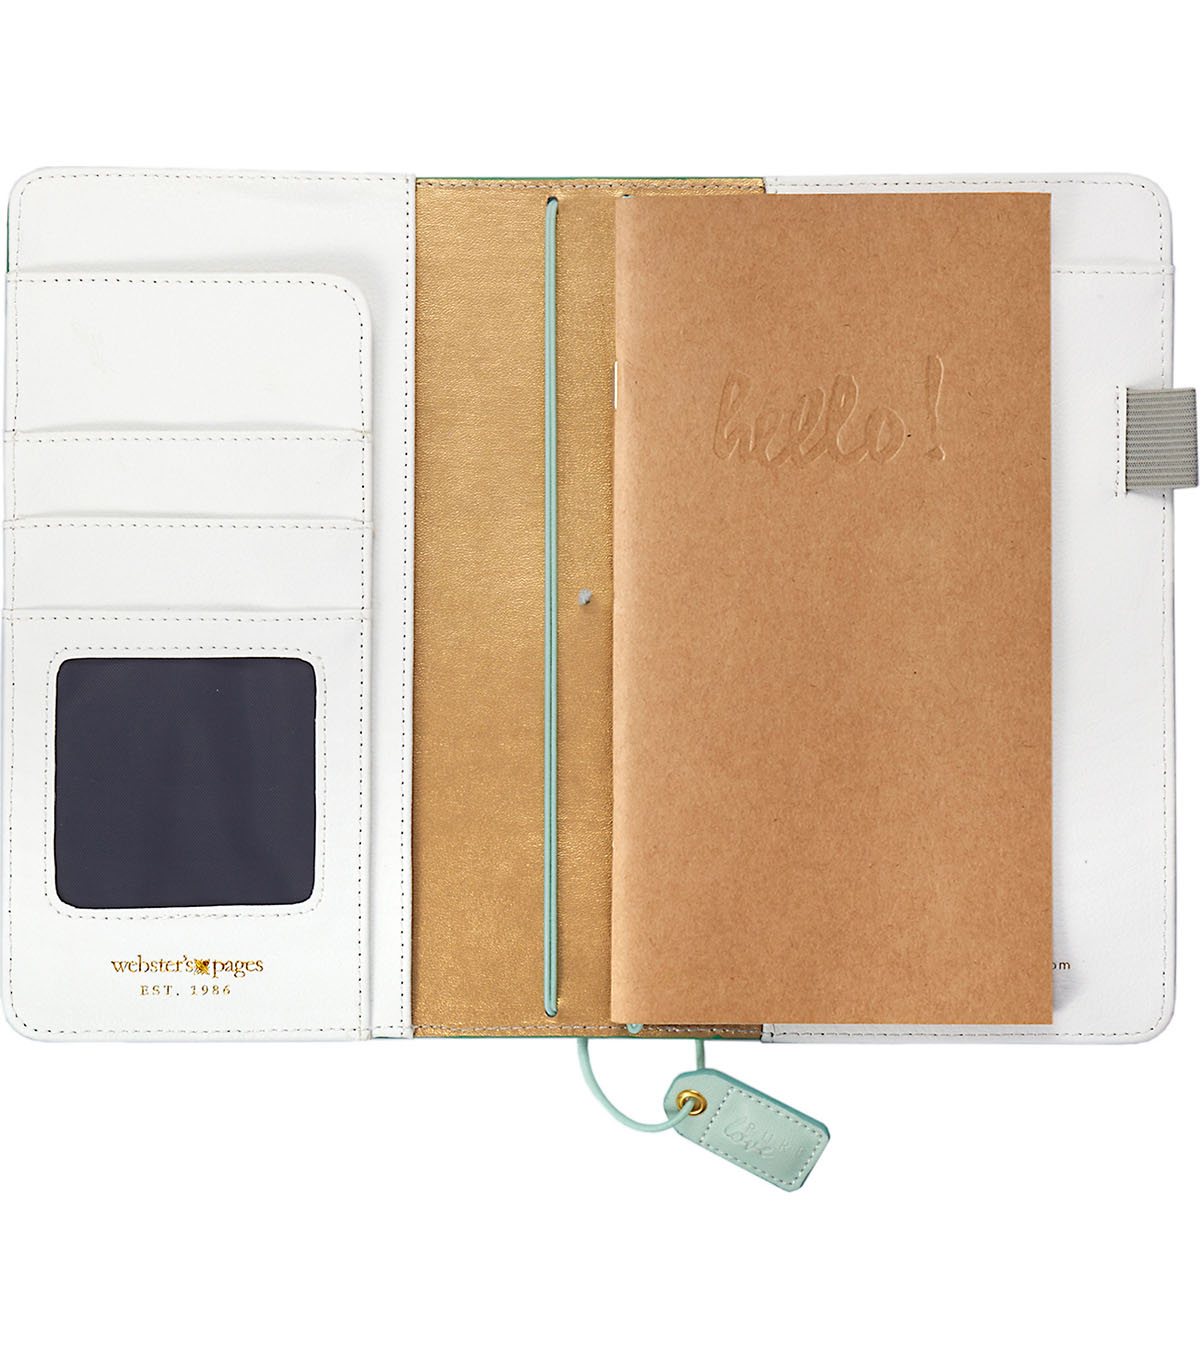 Webster\u0027s Pages Color Crush Faux Leather Traveler\u0027s Planner-Aspen Green